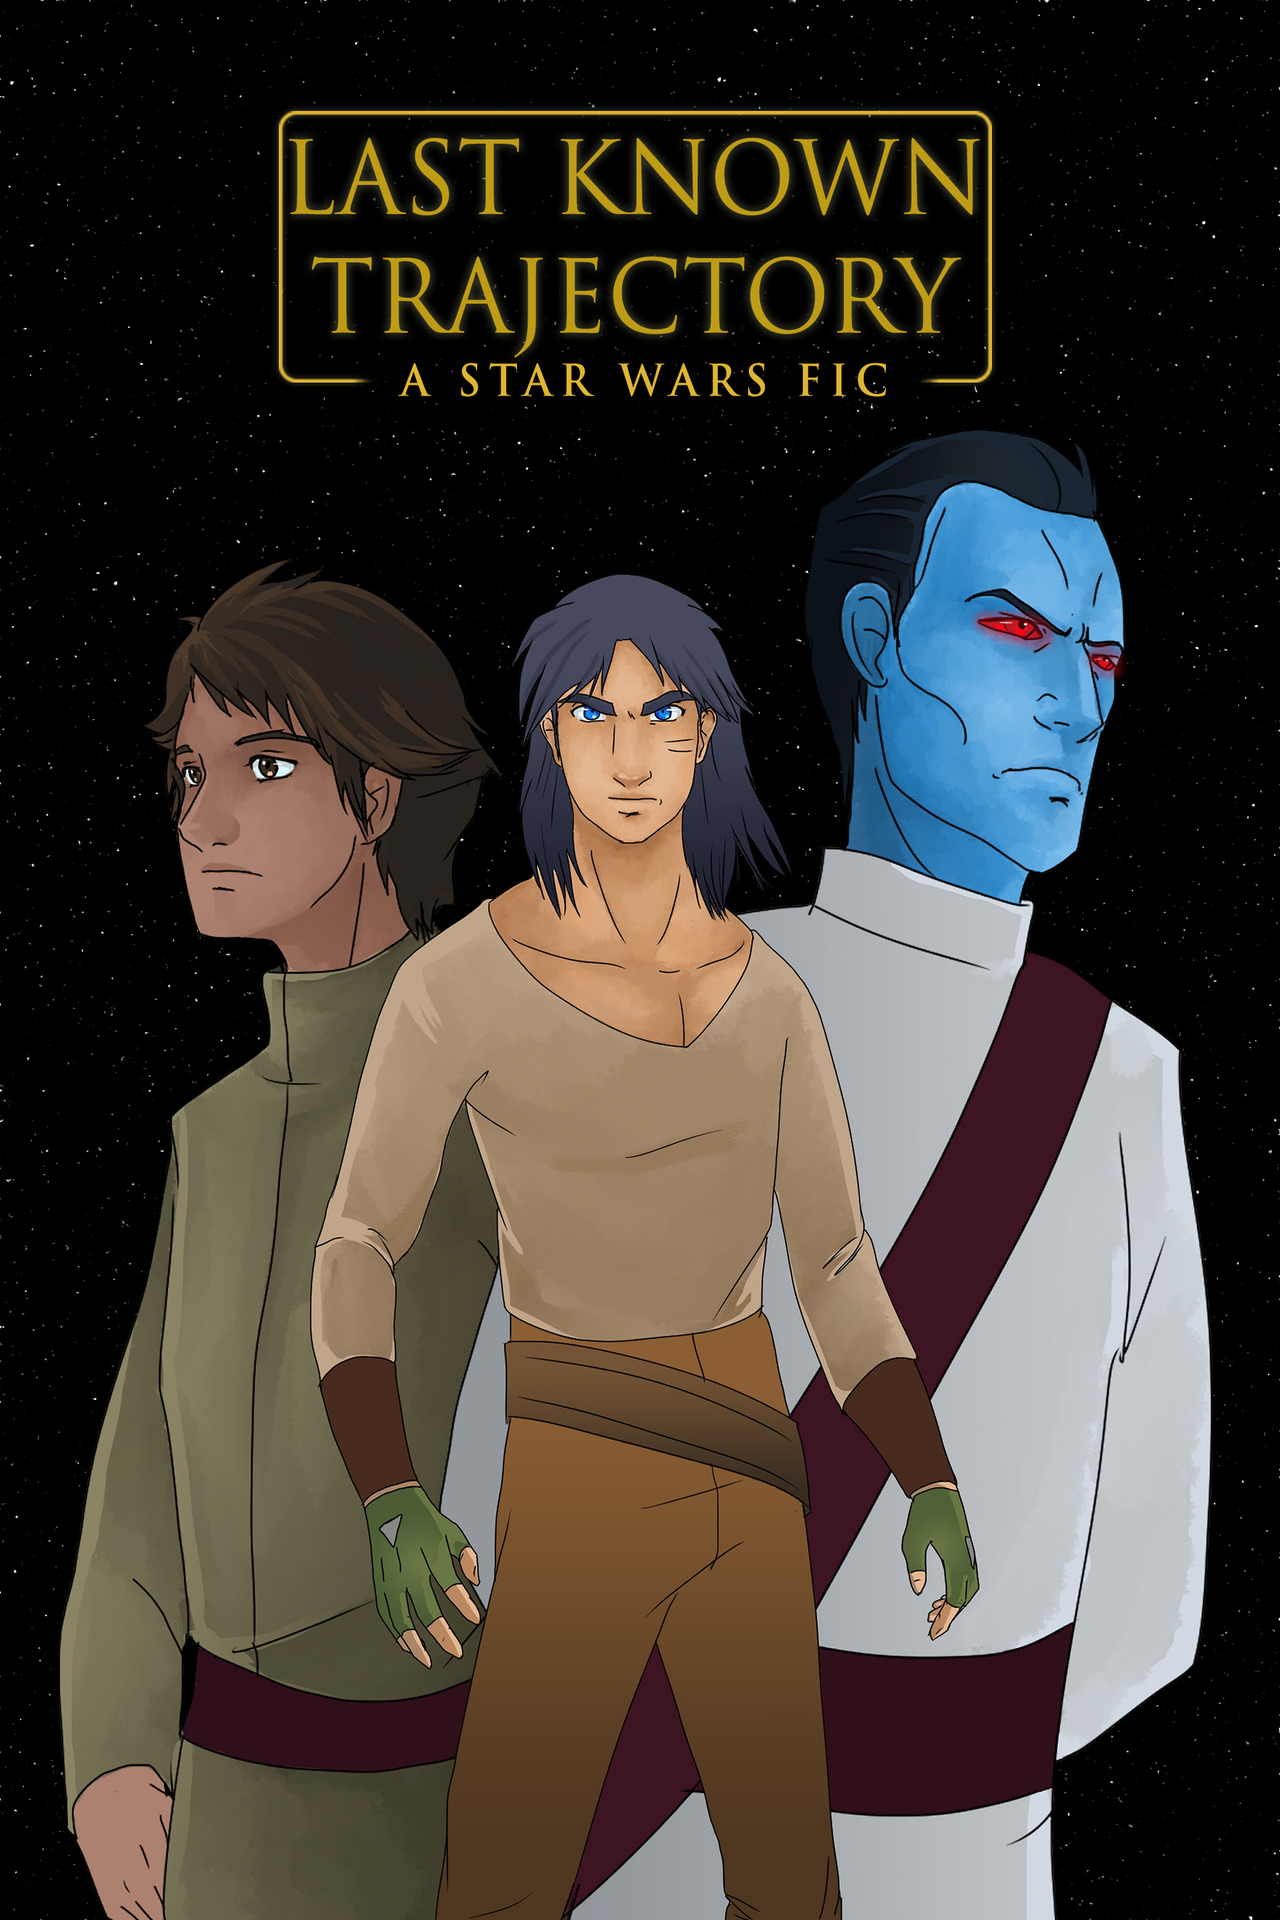 Last Known Trajectory - A Star Wars Fic about Ezra Bridger, Eli Vanto and Thrawn after Star Wars Rebels fanfic